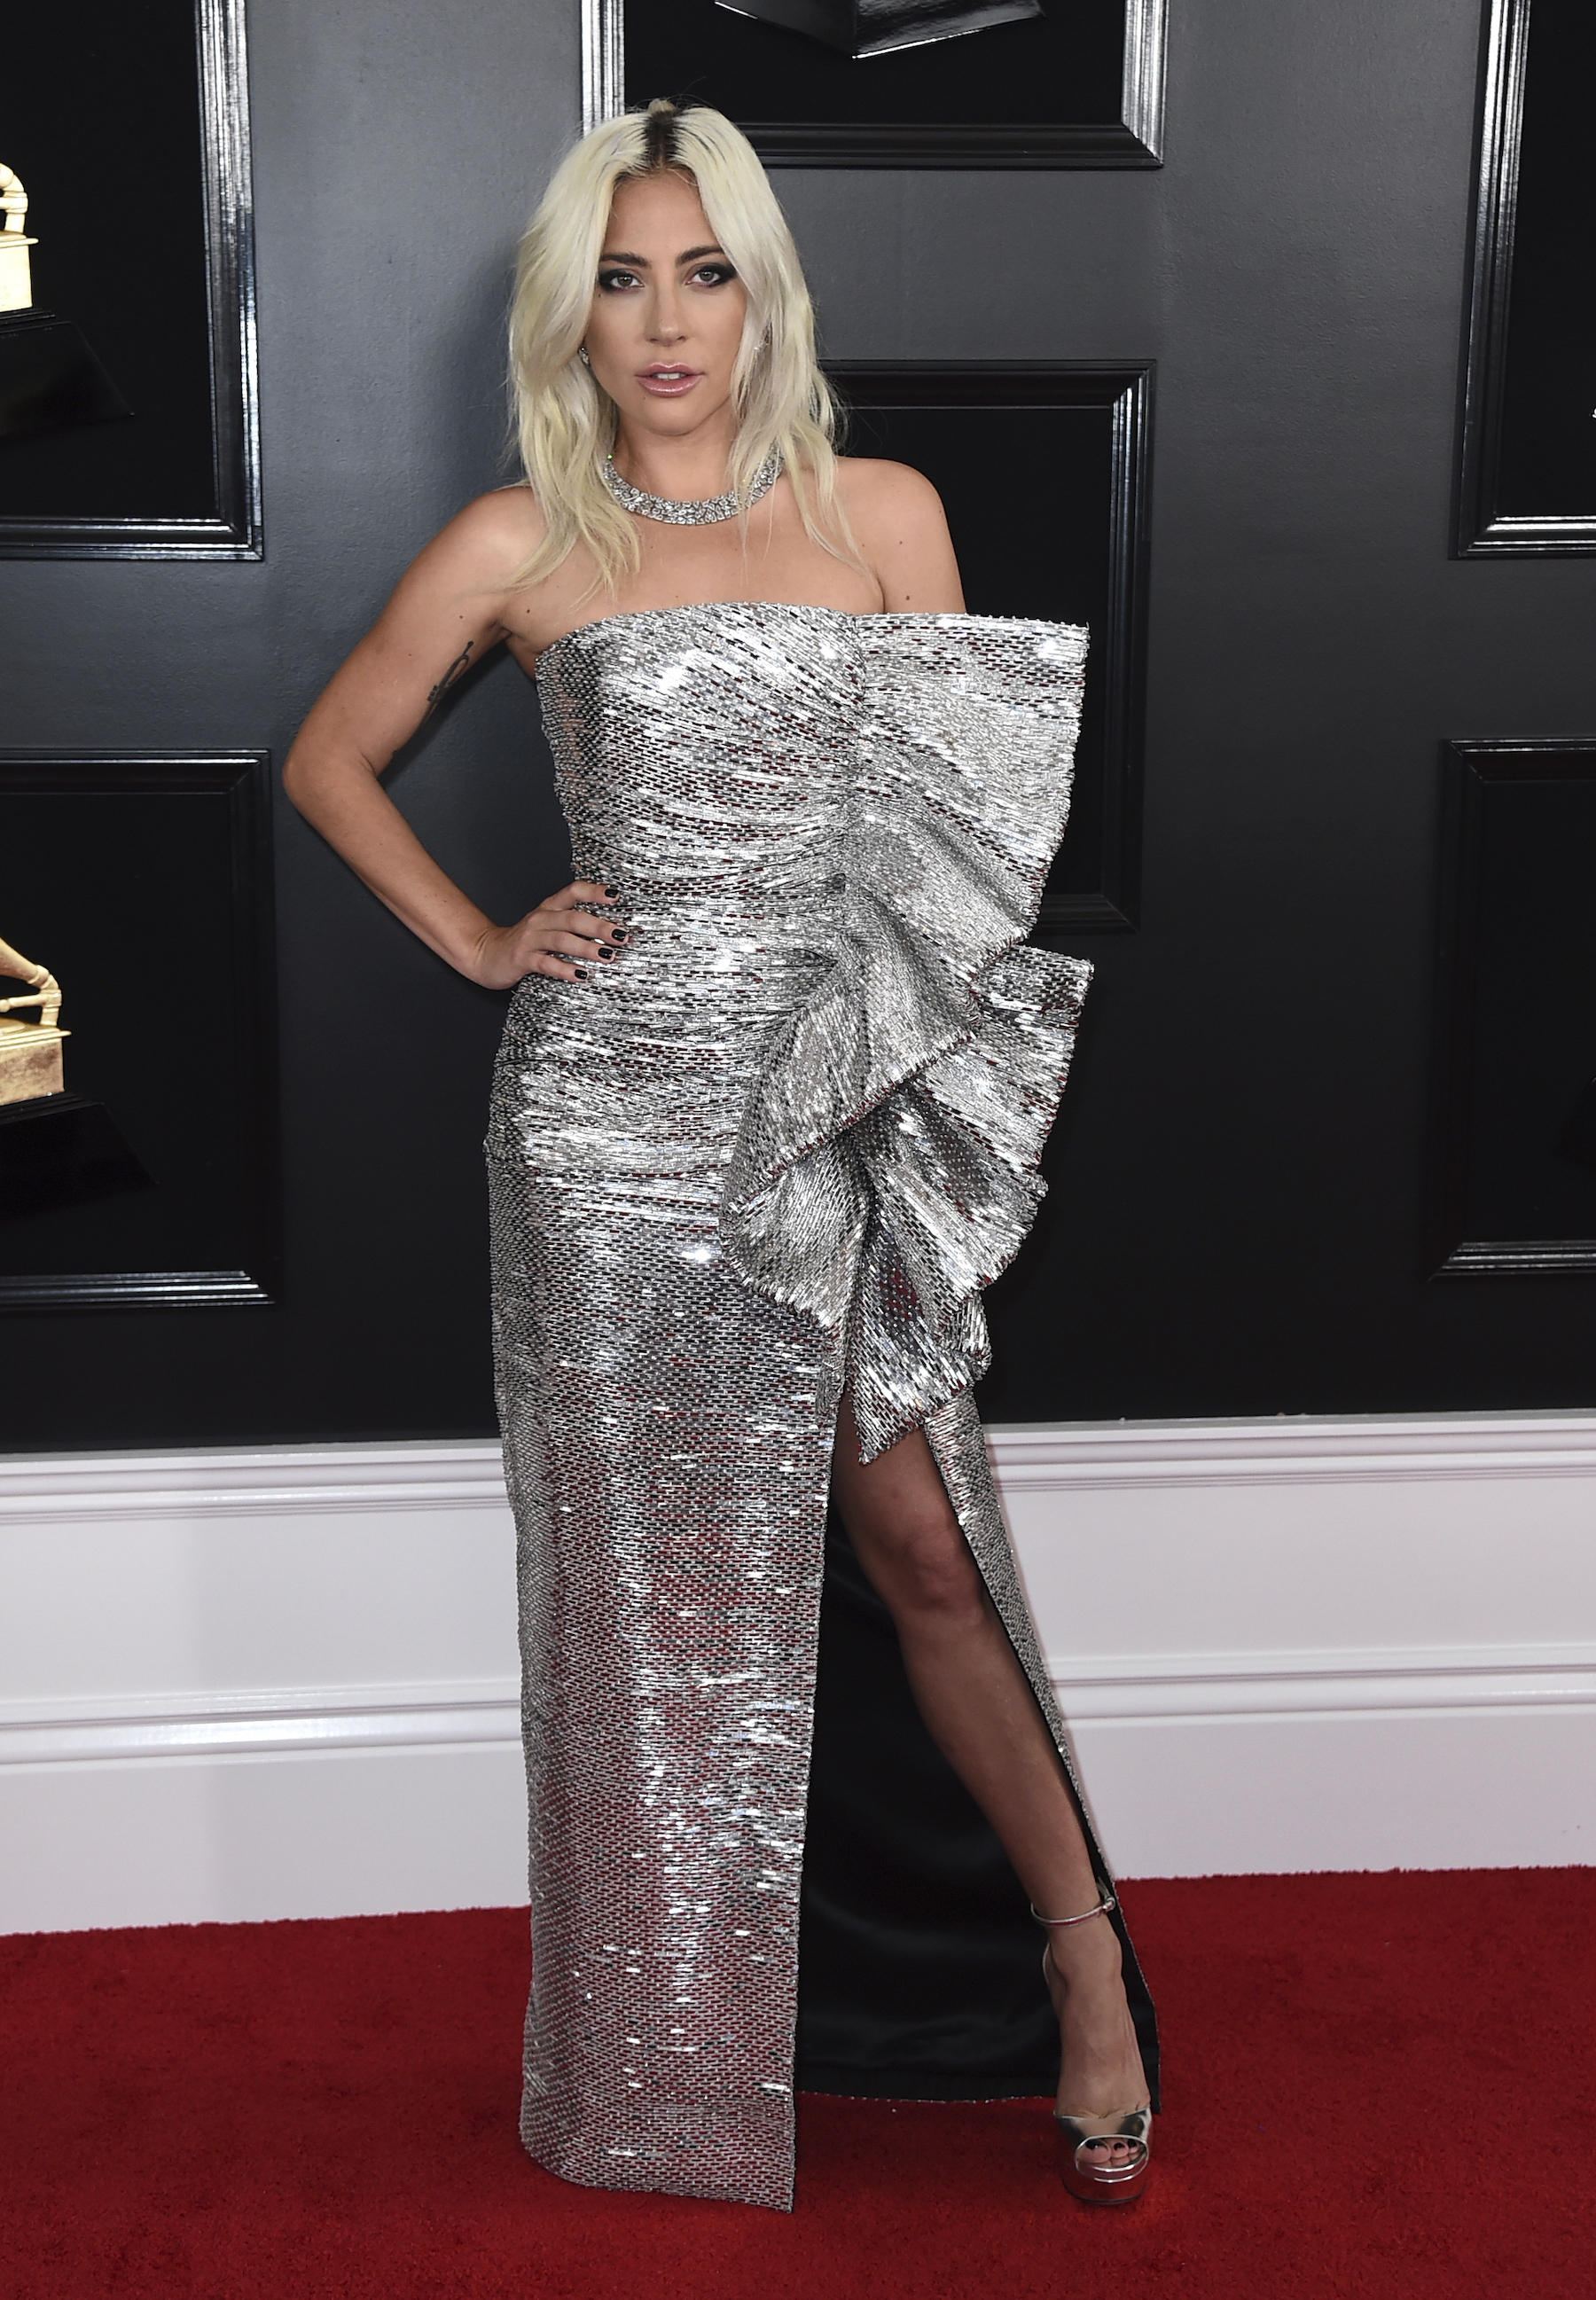 <div class='meta'><div class='origin-logo' data-origin='AP'></div><span class='caption-text' data-credit='Jordan Strauss/Invision/AP'>Lady Gaga arrives at the 61st annual Grammy Awards at the Staples Center on Sunday, Feb. 10, 2019, in Los Angeles.</span></div>